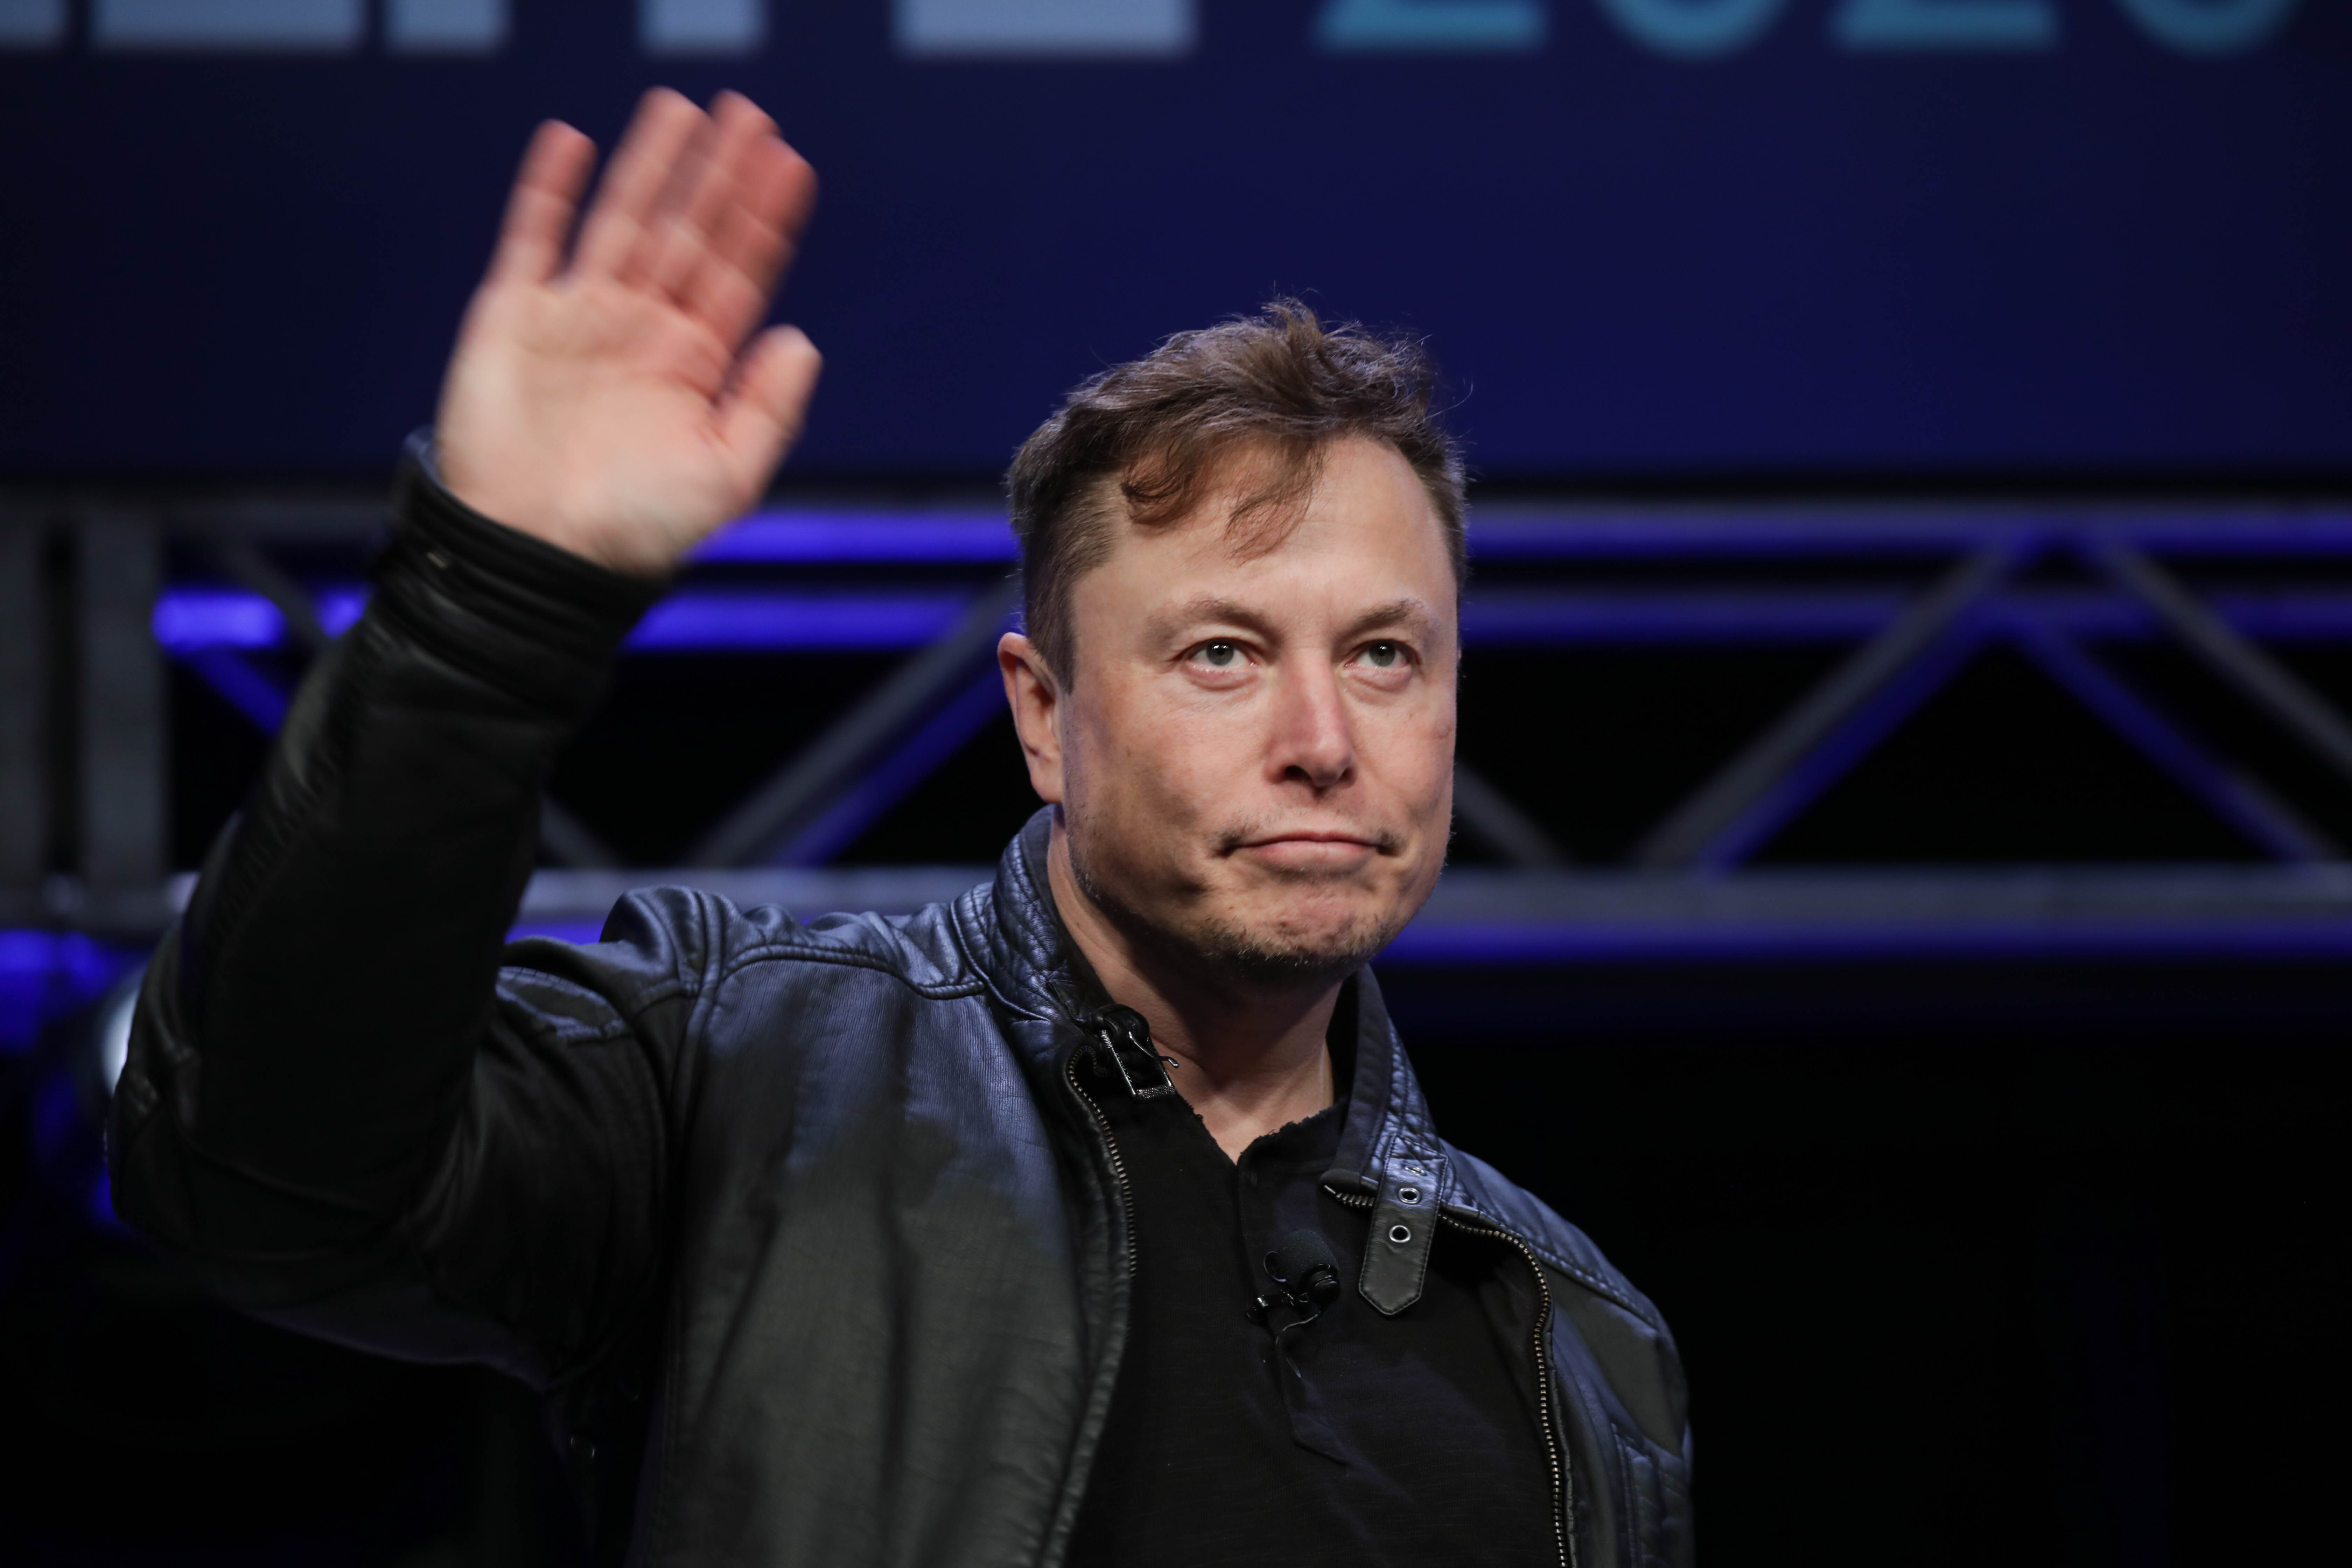 Elon Musk waves from a stage.